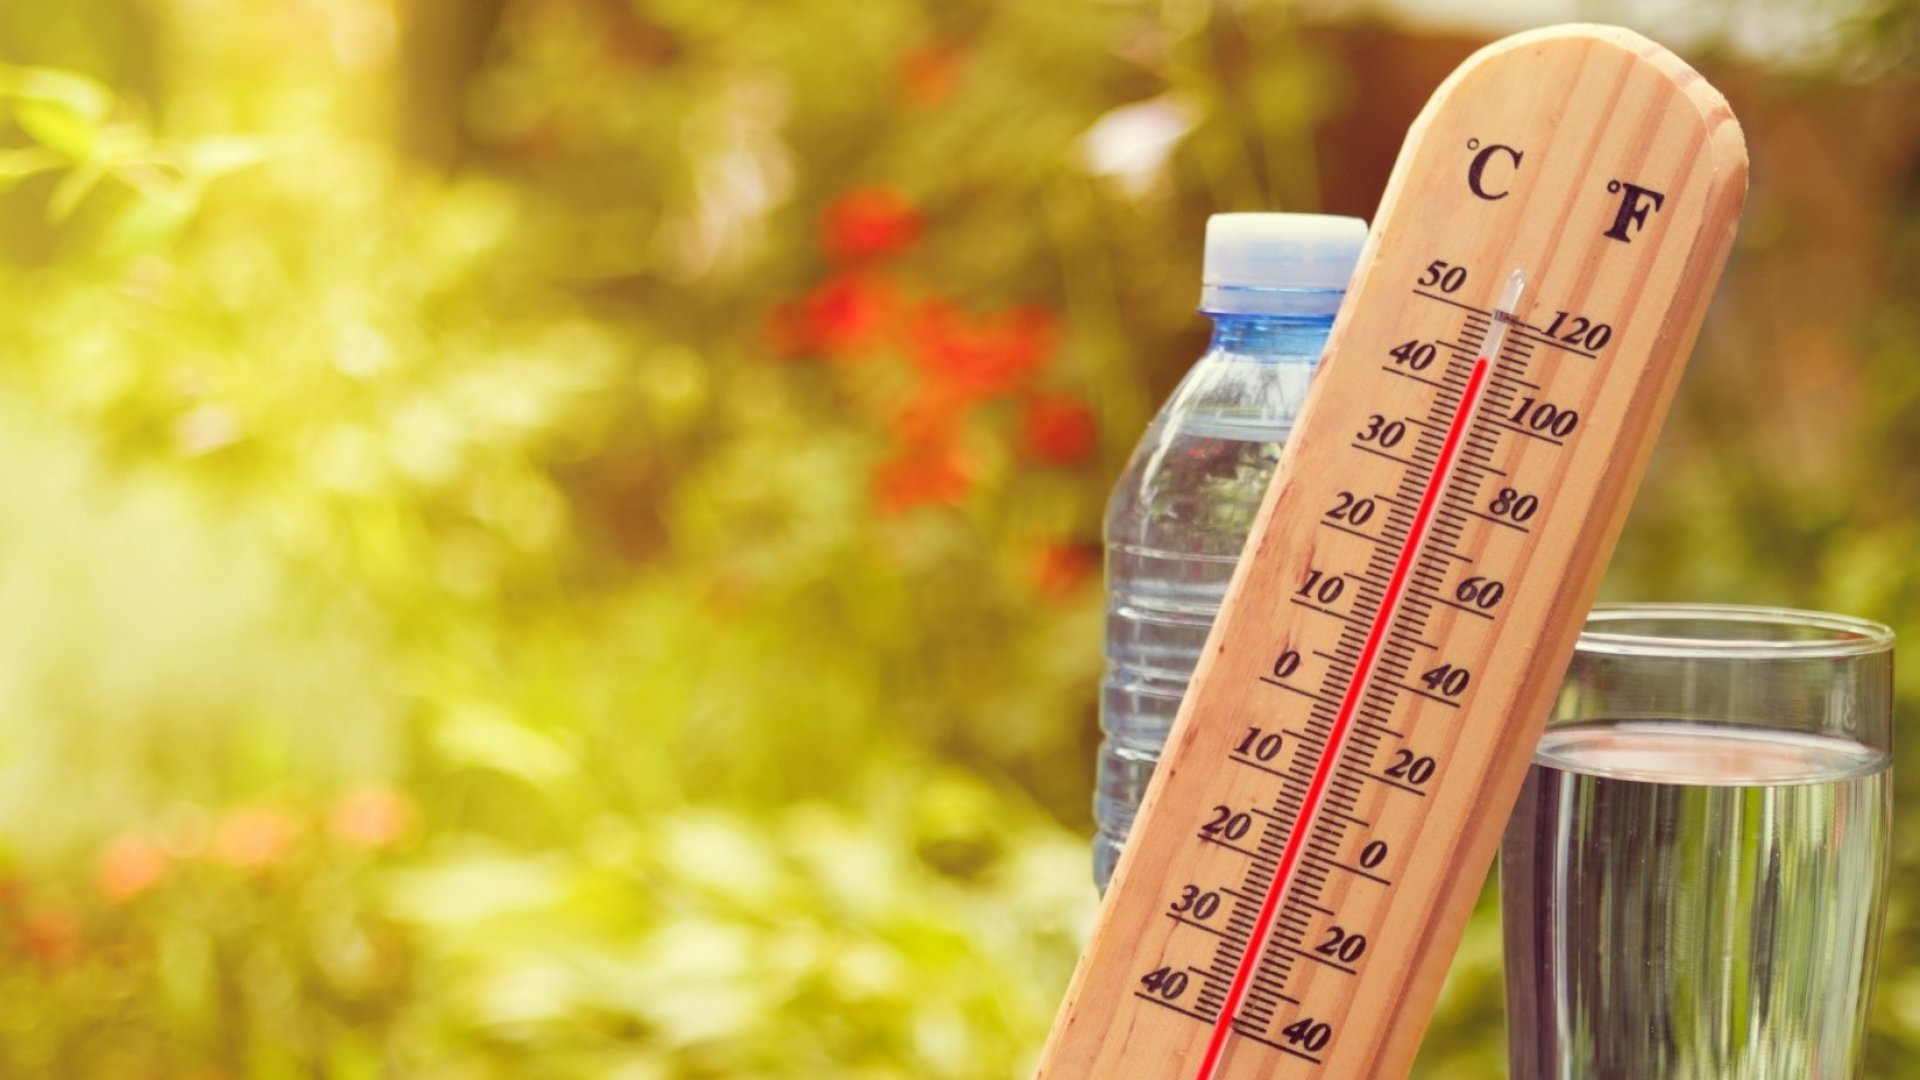 Here's Why Hot Weather Makes You Cranky, According to Science